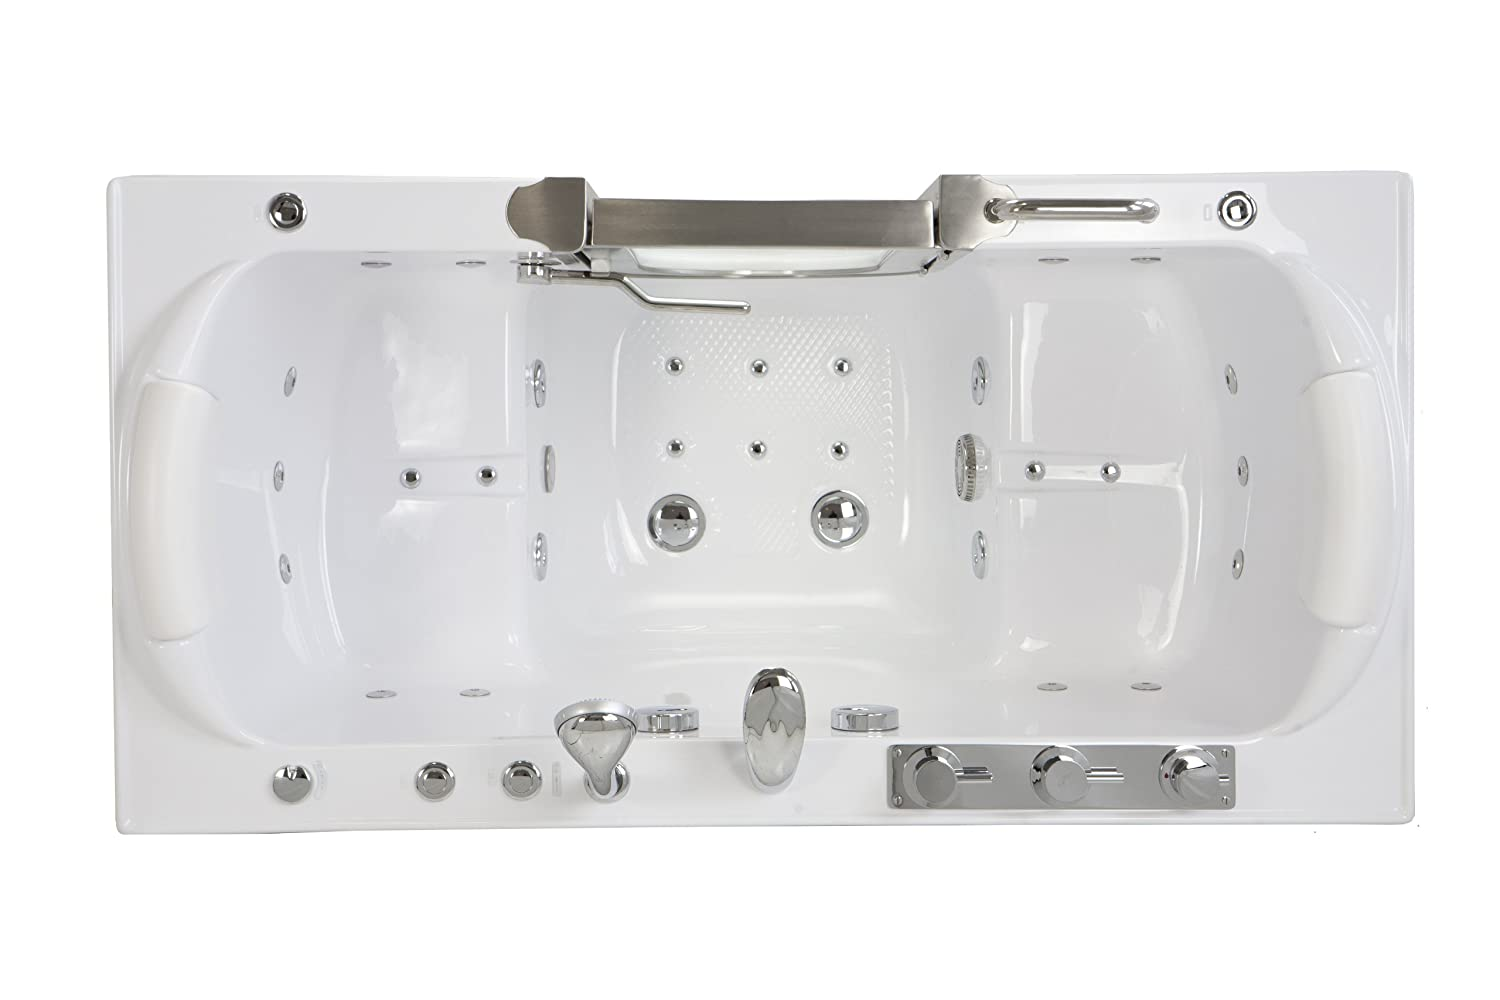 60 X 30 Companion Massage Walk In Tub Home Improvement Standard Whirlpool Pump Together With Fuel Wiring Diagram